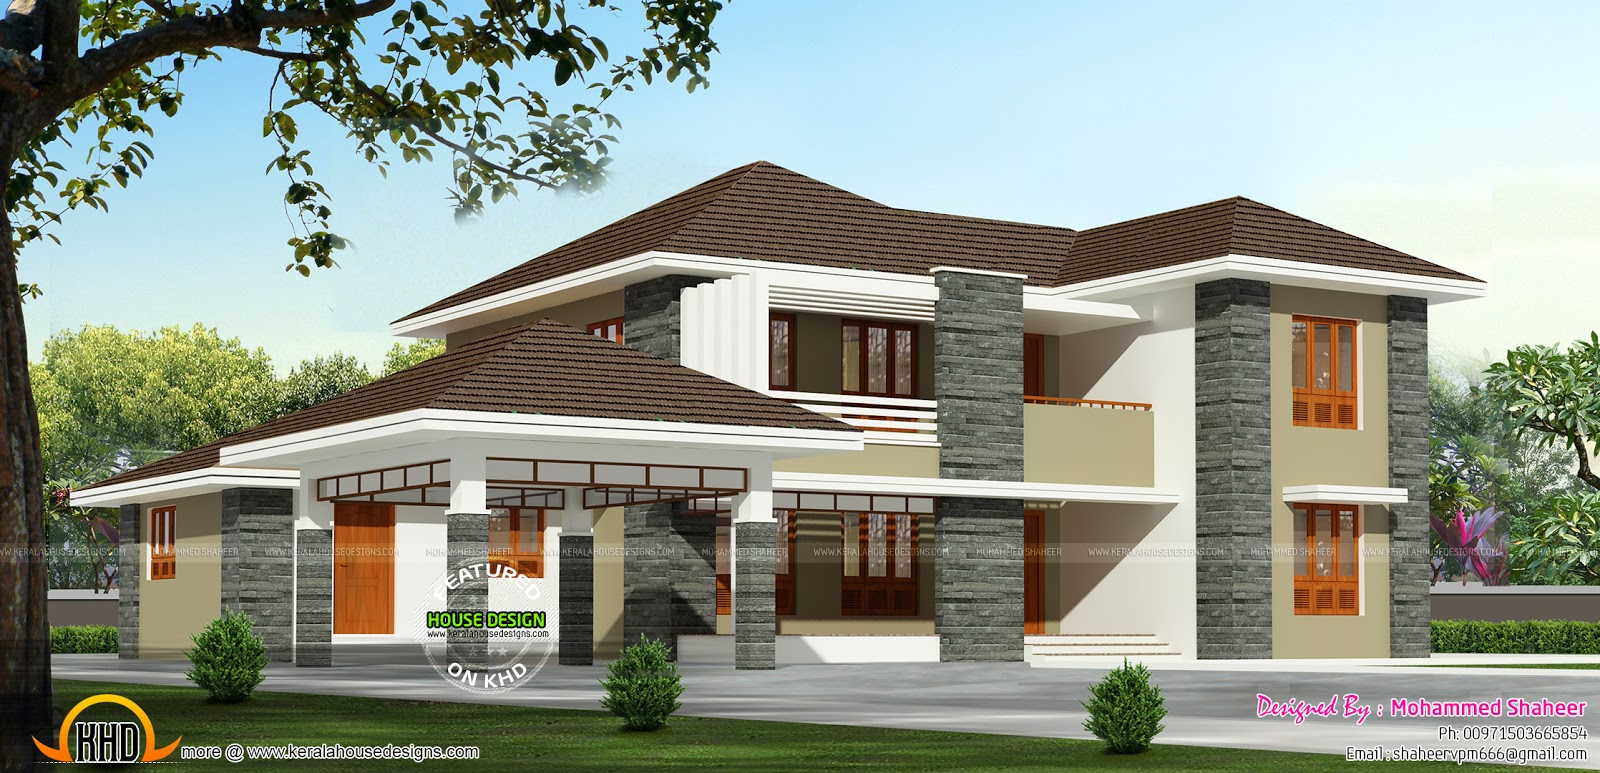 2000 square foot house kerala home design and floor plans for Best home designs under 2000 square feet